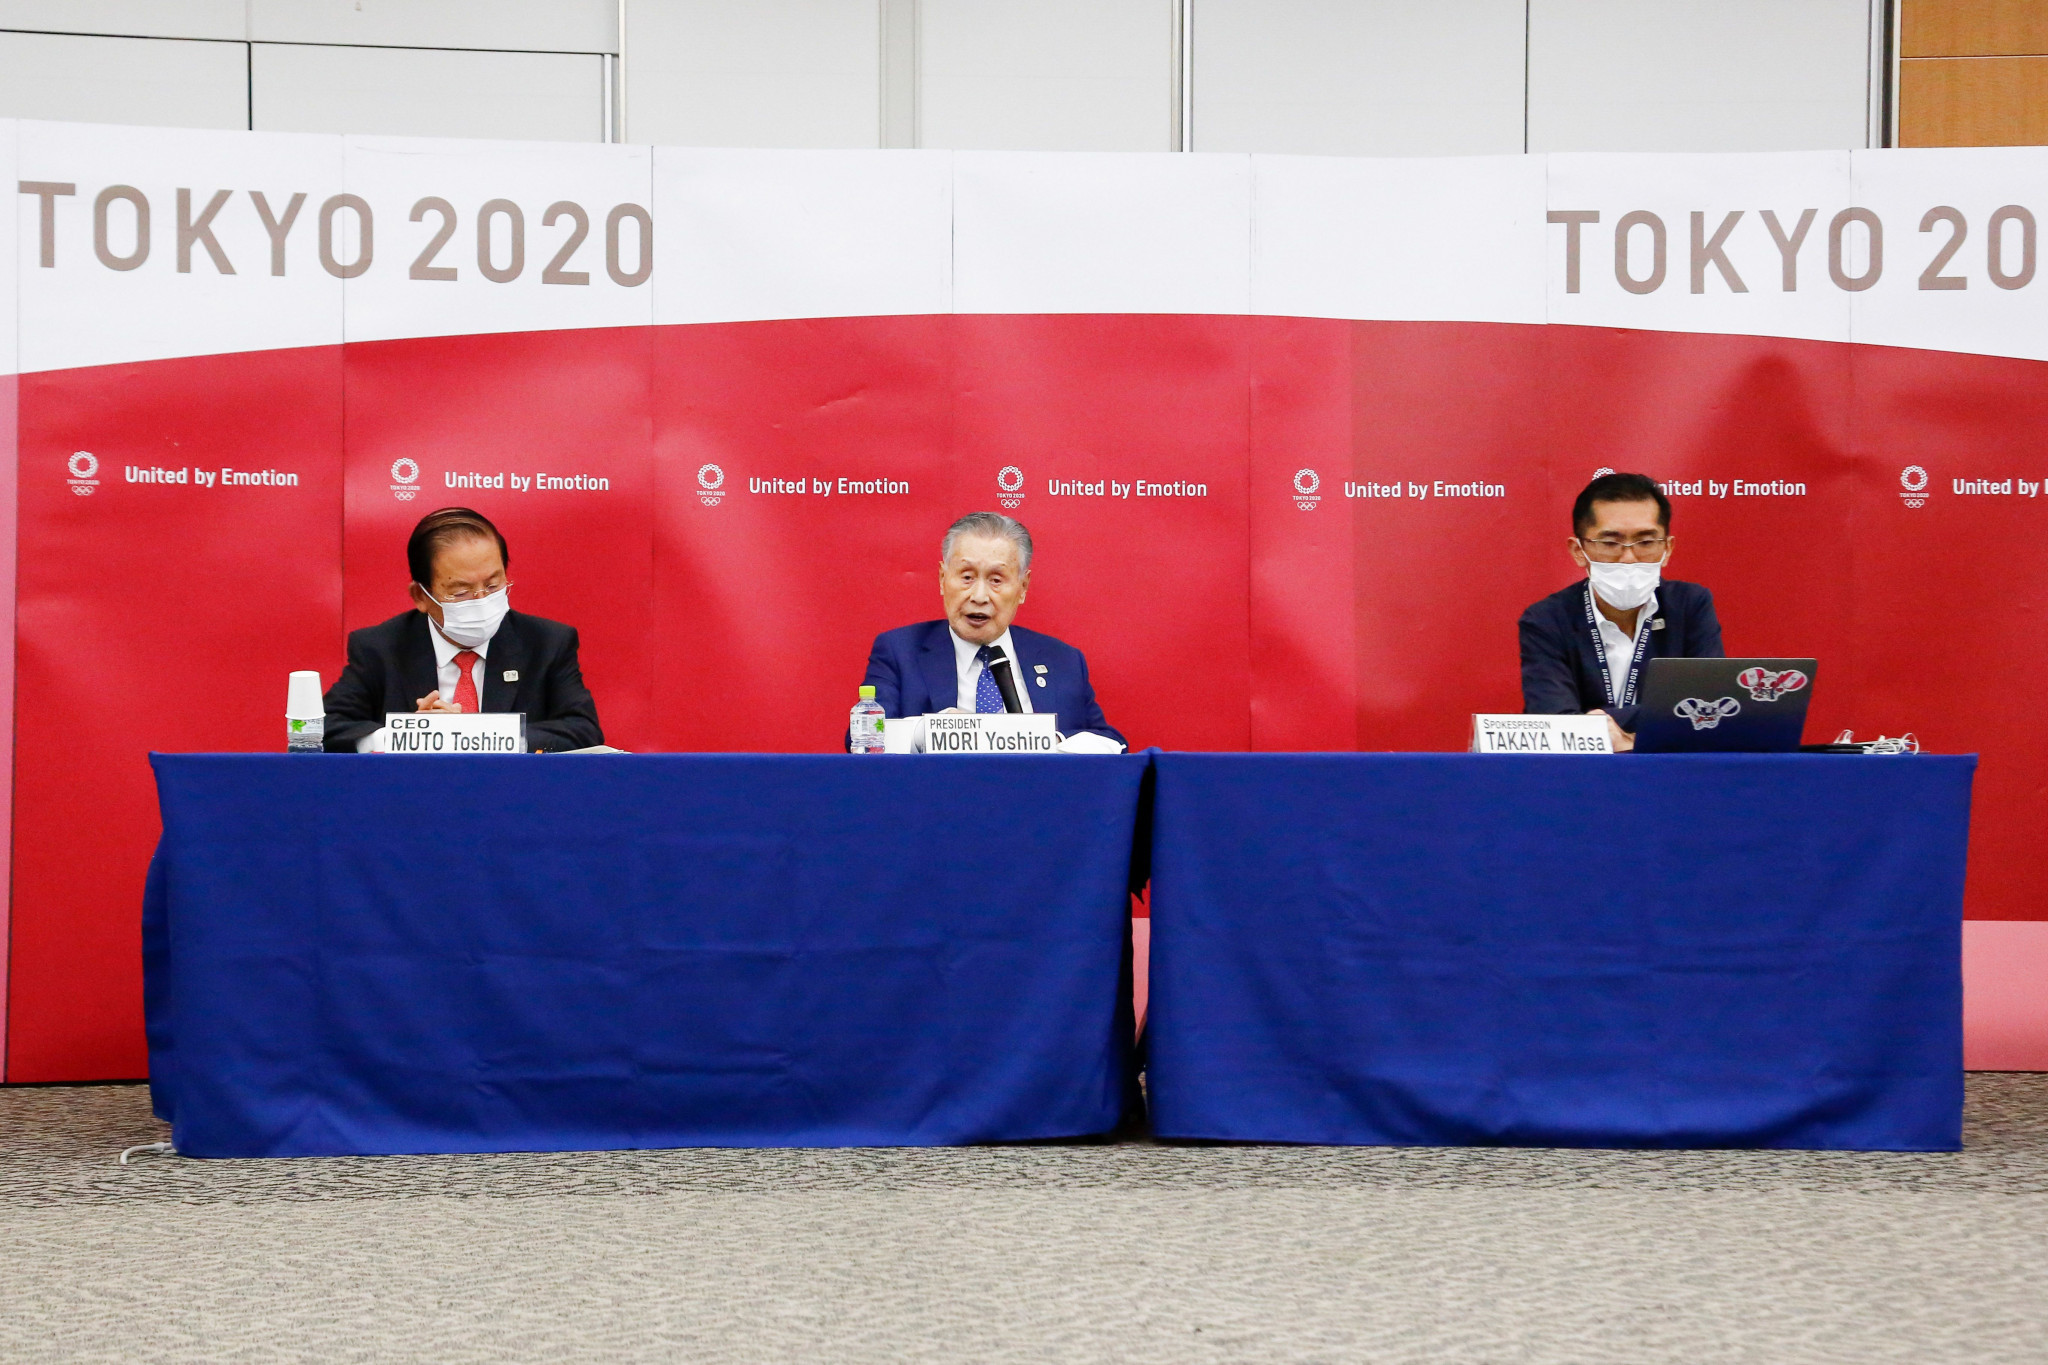 Tokyo 2020 claims simplification measures will save $280 million